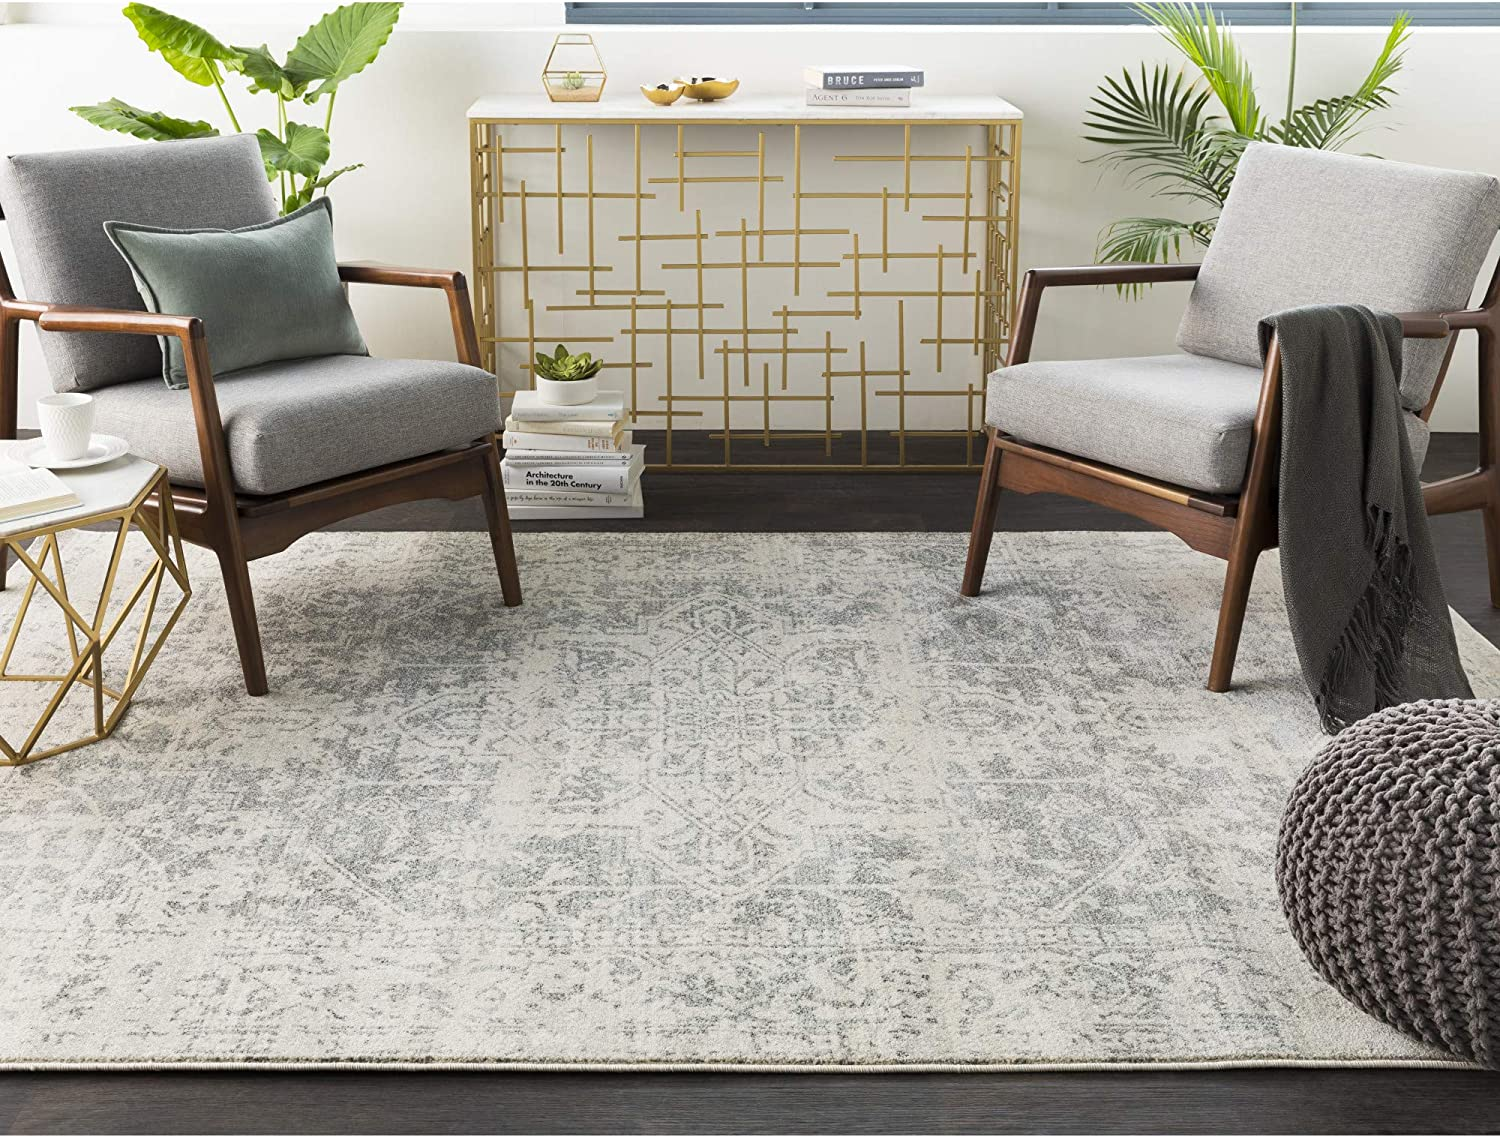 Amazon Com Janine Gray And Beige Updated Traditional Area Rug 10 X 14 Furniture Decor